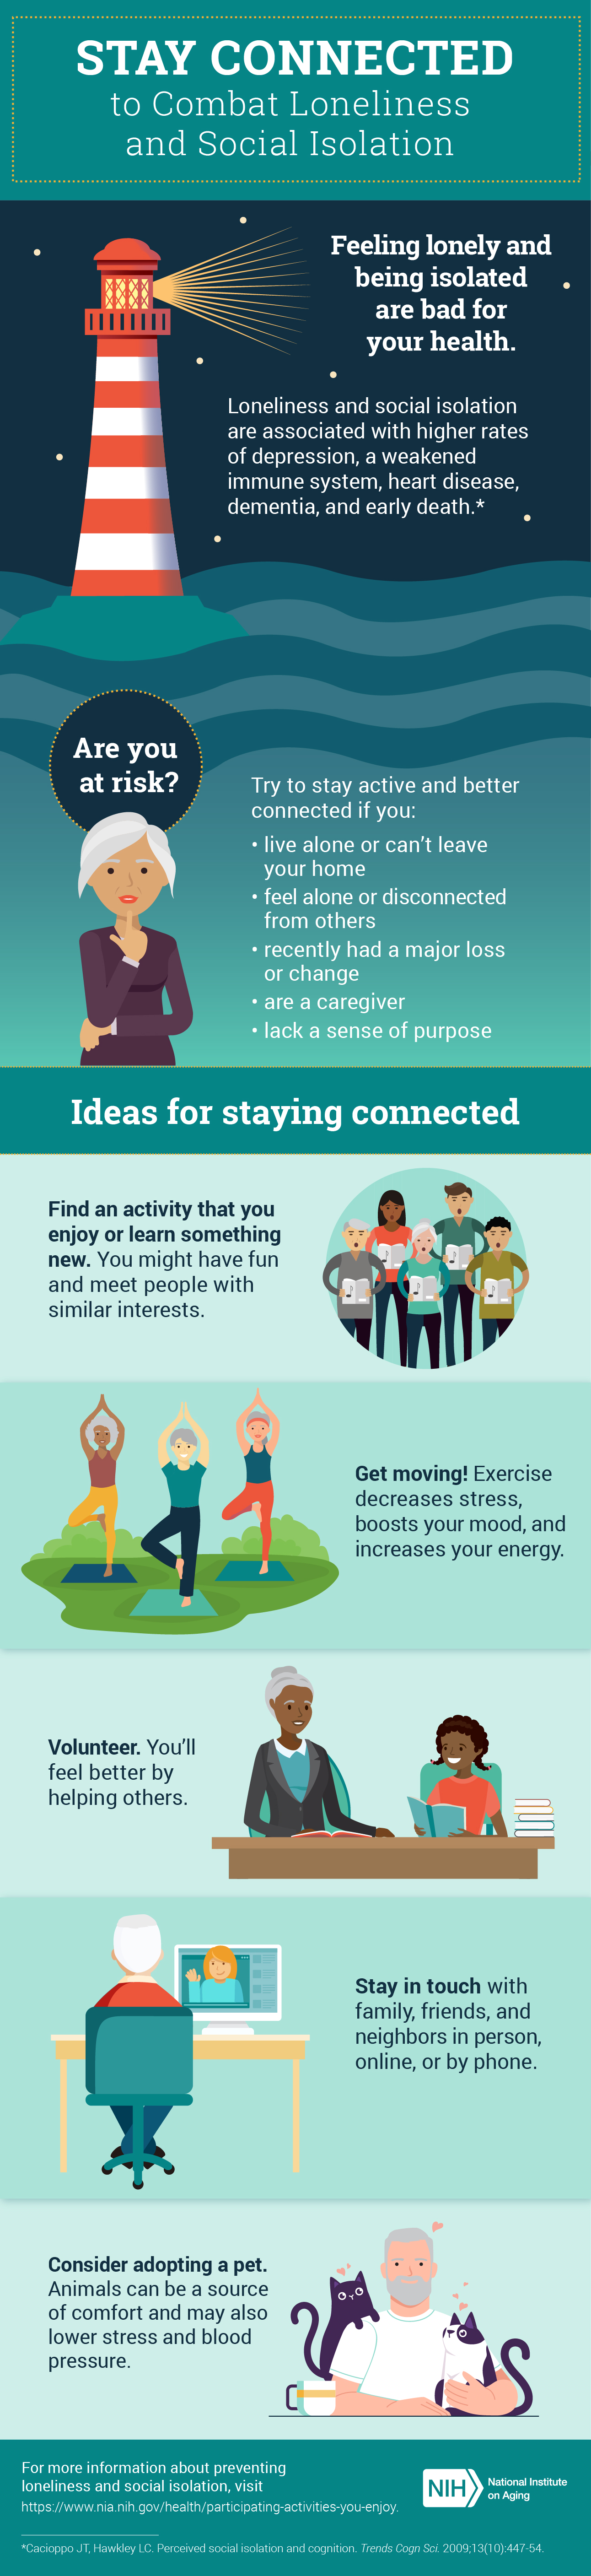 Stay connected to combat loneliness and social isolation infographic. Full transcript below.